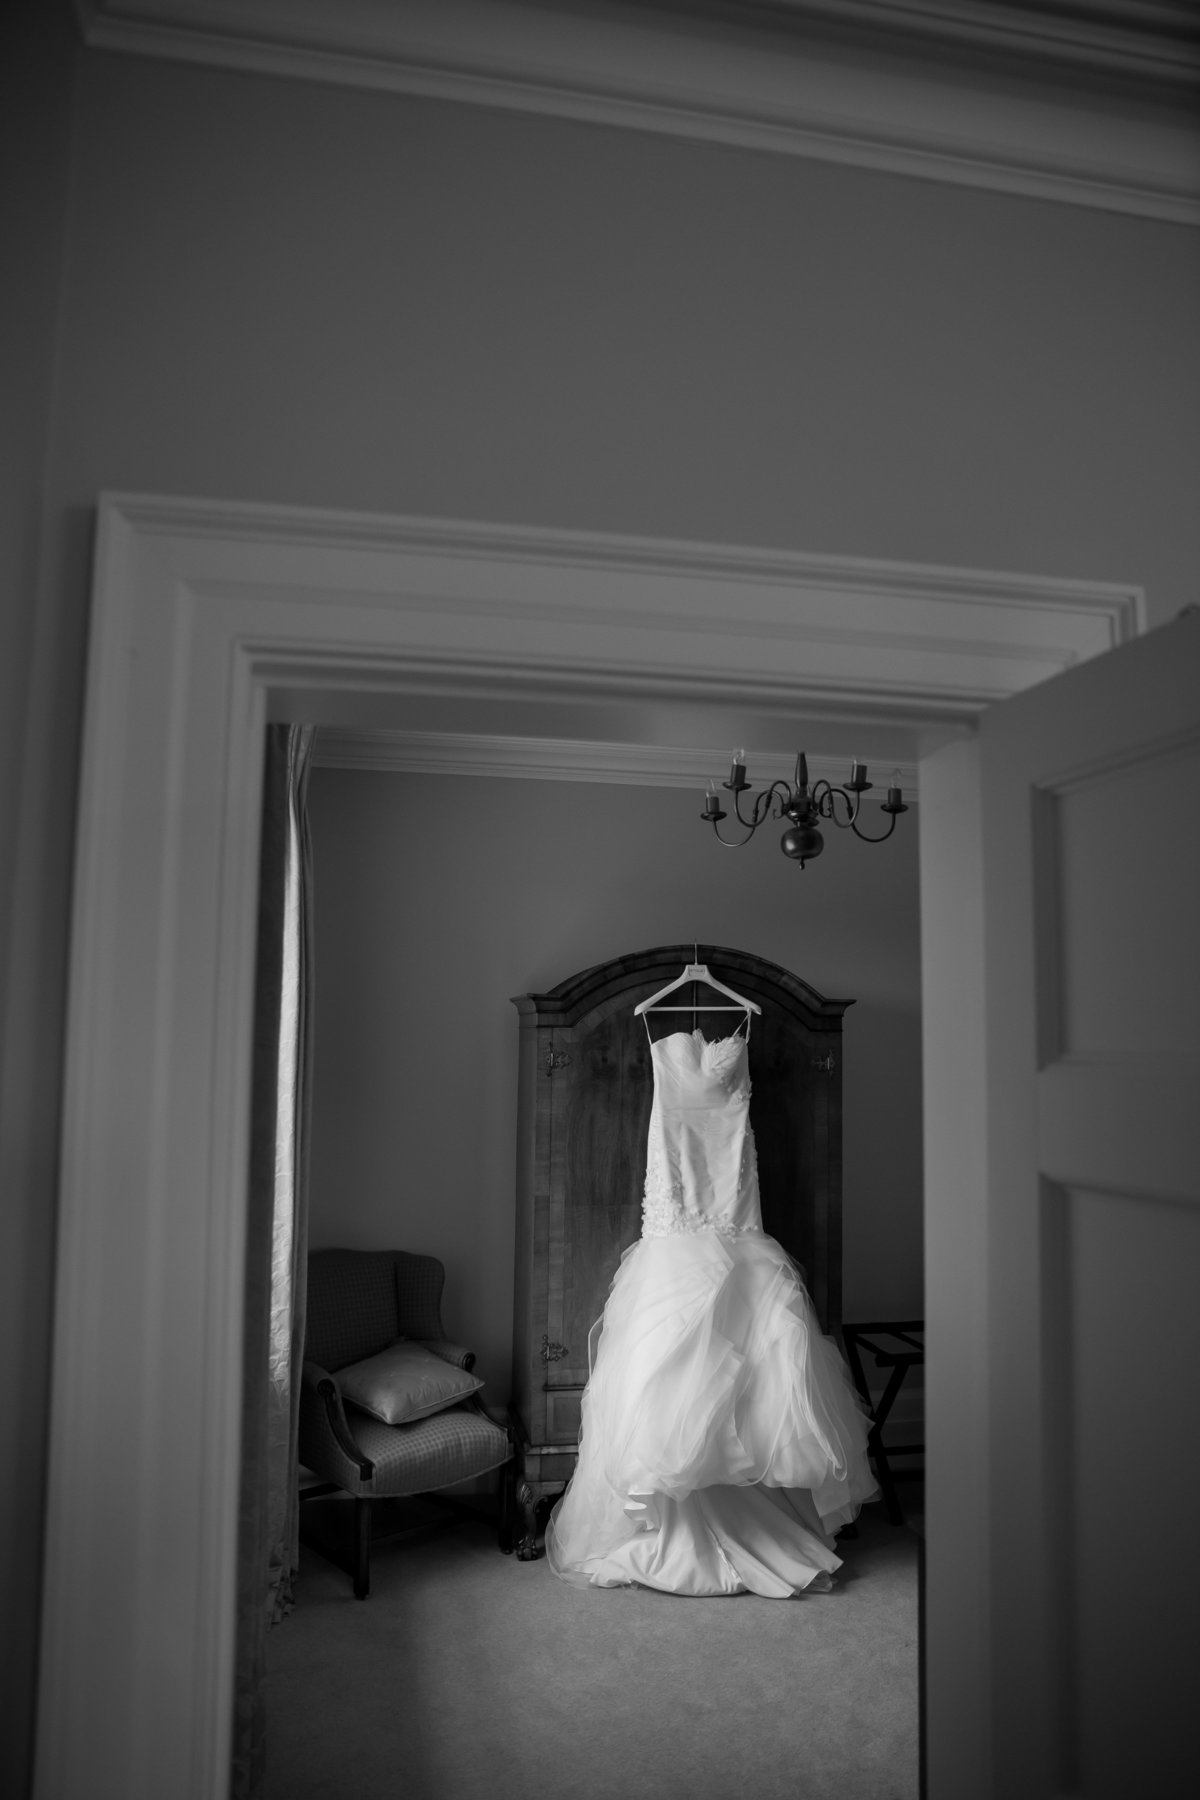 cornwall wedding venue brides dress  photo